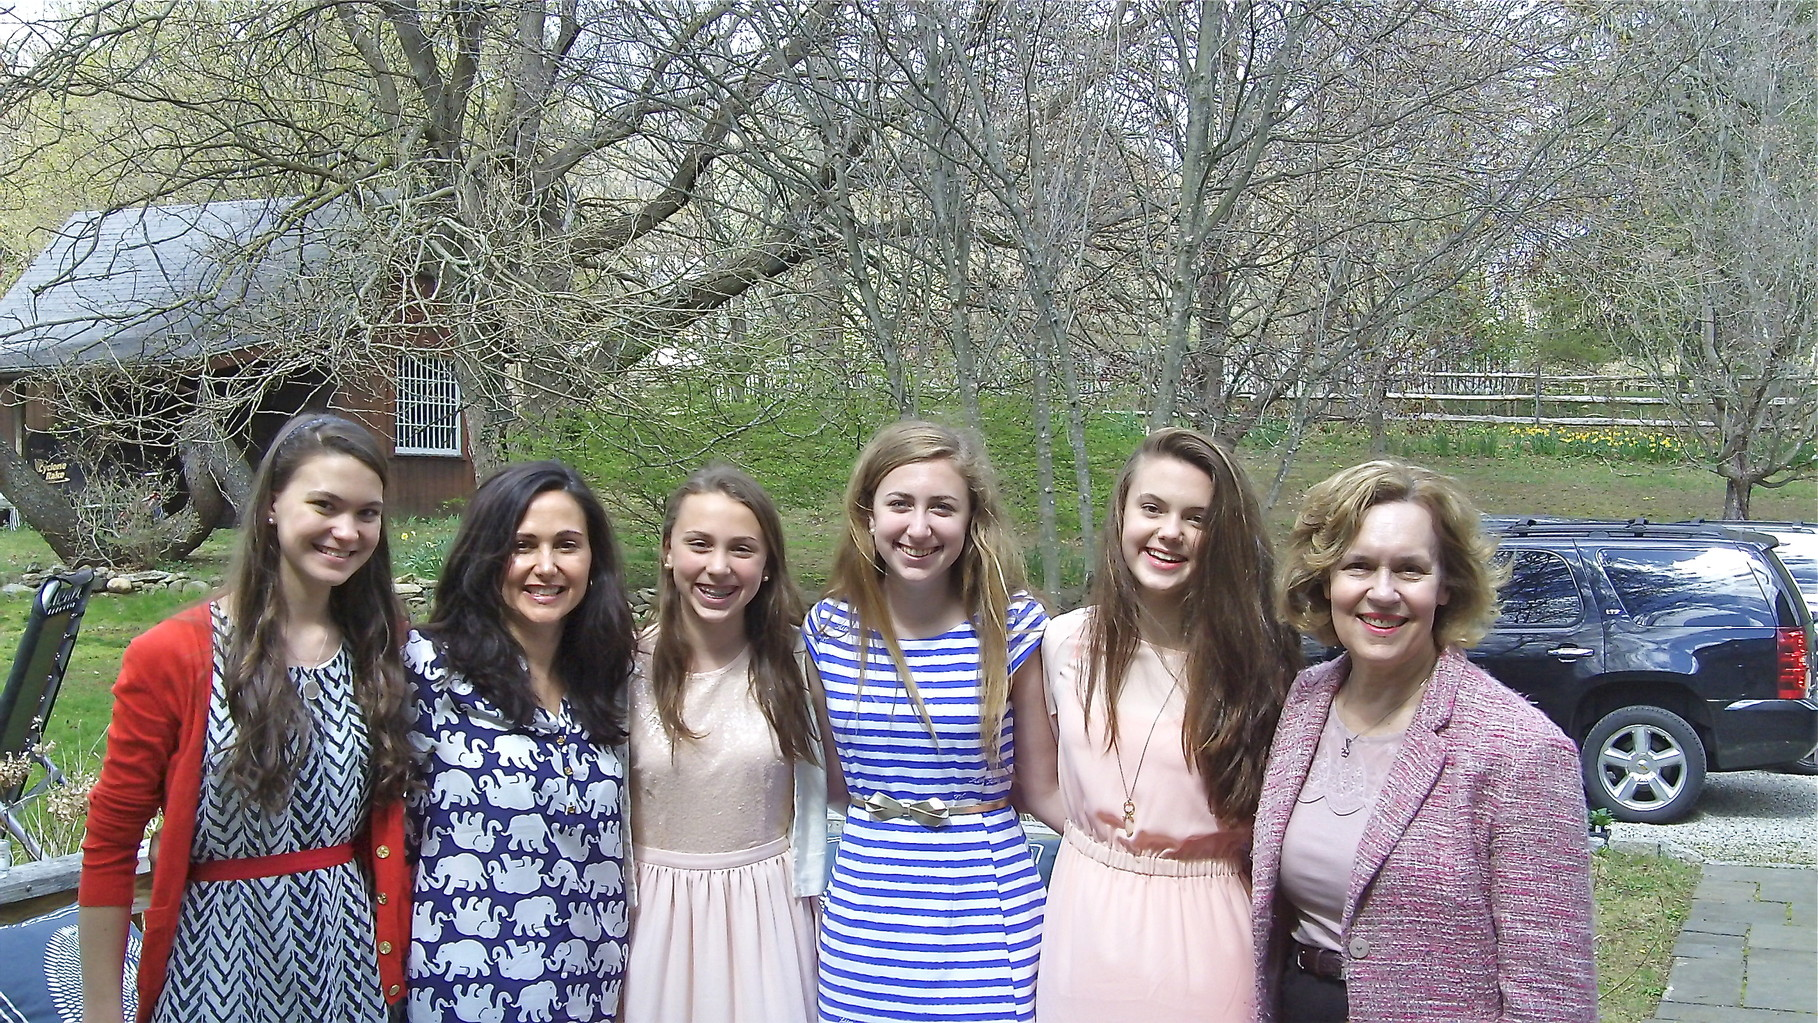 Ellie, Allie, Gabby, Emma, Kate, Lorraine at the party after the Communion